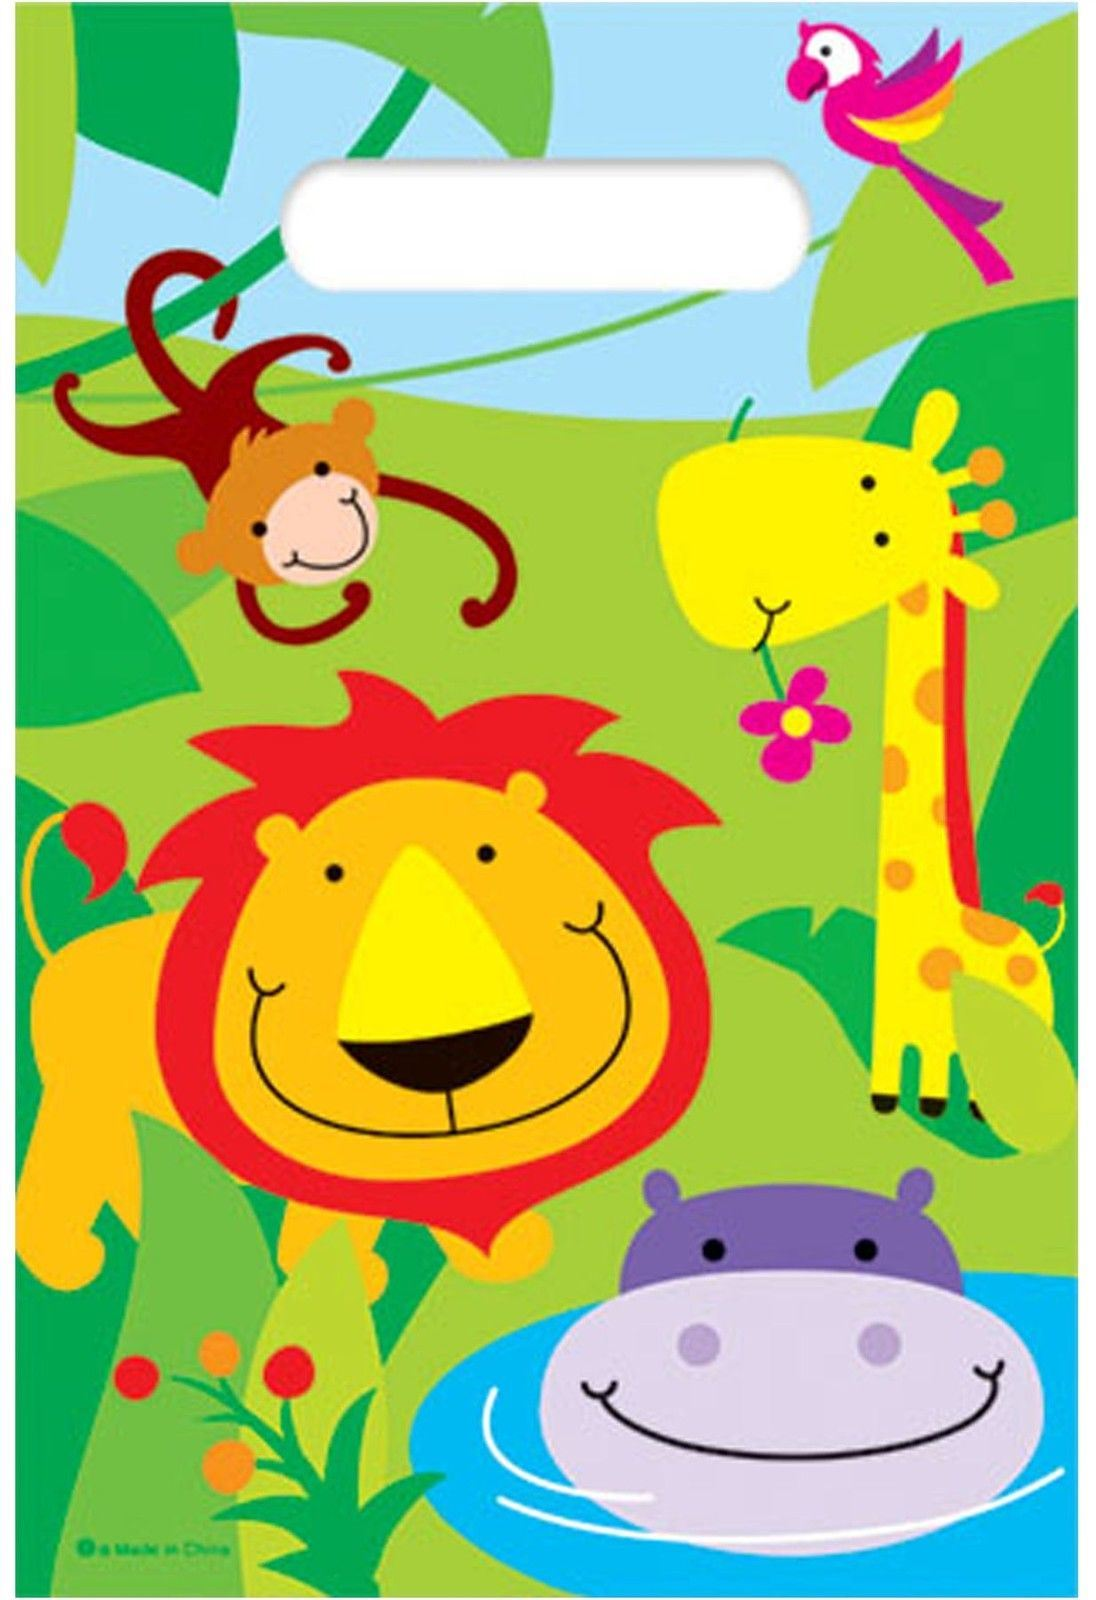 12 boy girl kid child birthday party invitation card envelope jungle 12 boy girl kid child birthday party invitation card envelope jungle zoo animal stopboris Image collections